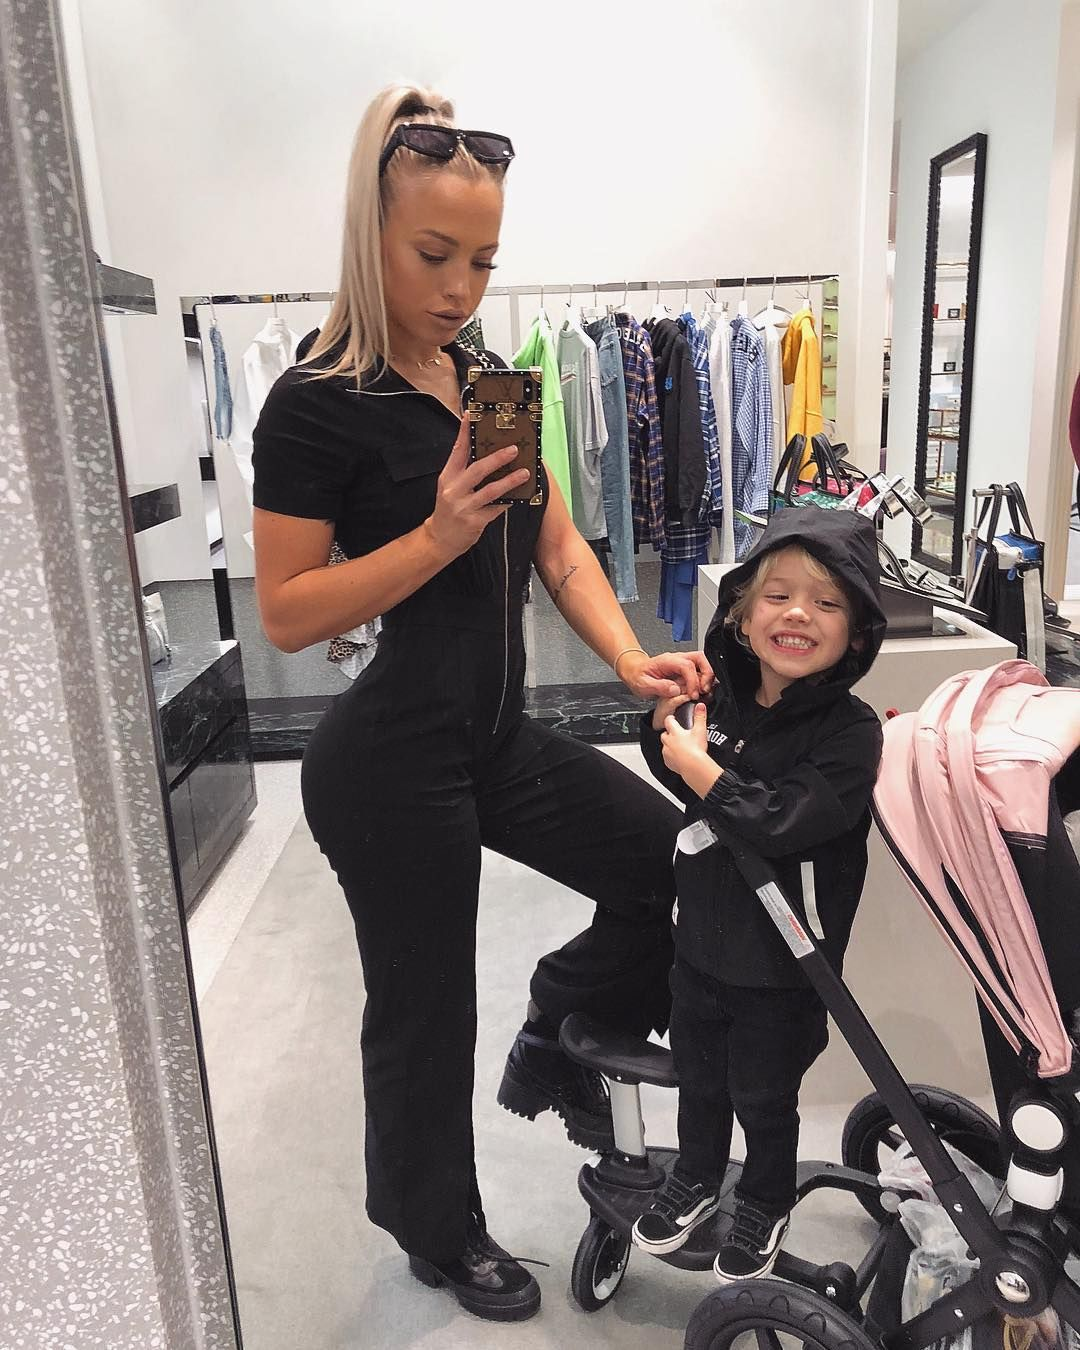 "f78625b9cd0 ⠀⠀⠀⠀⠀⠀⠀⠀⠀⠀⠀⠀⠀⠀⠀⠀⠀⠀Tammy 🦄 on Instagram  ""Mumma life ♥ wearing  fashionnova"""